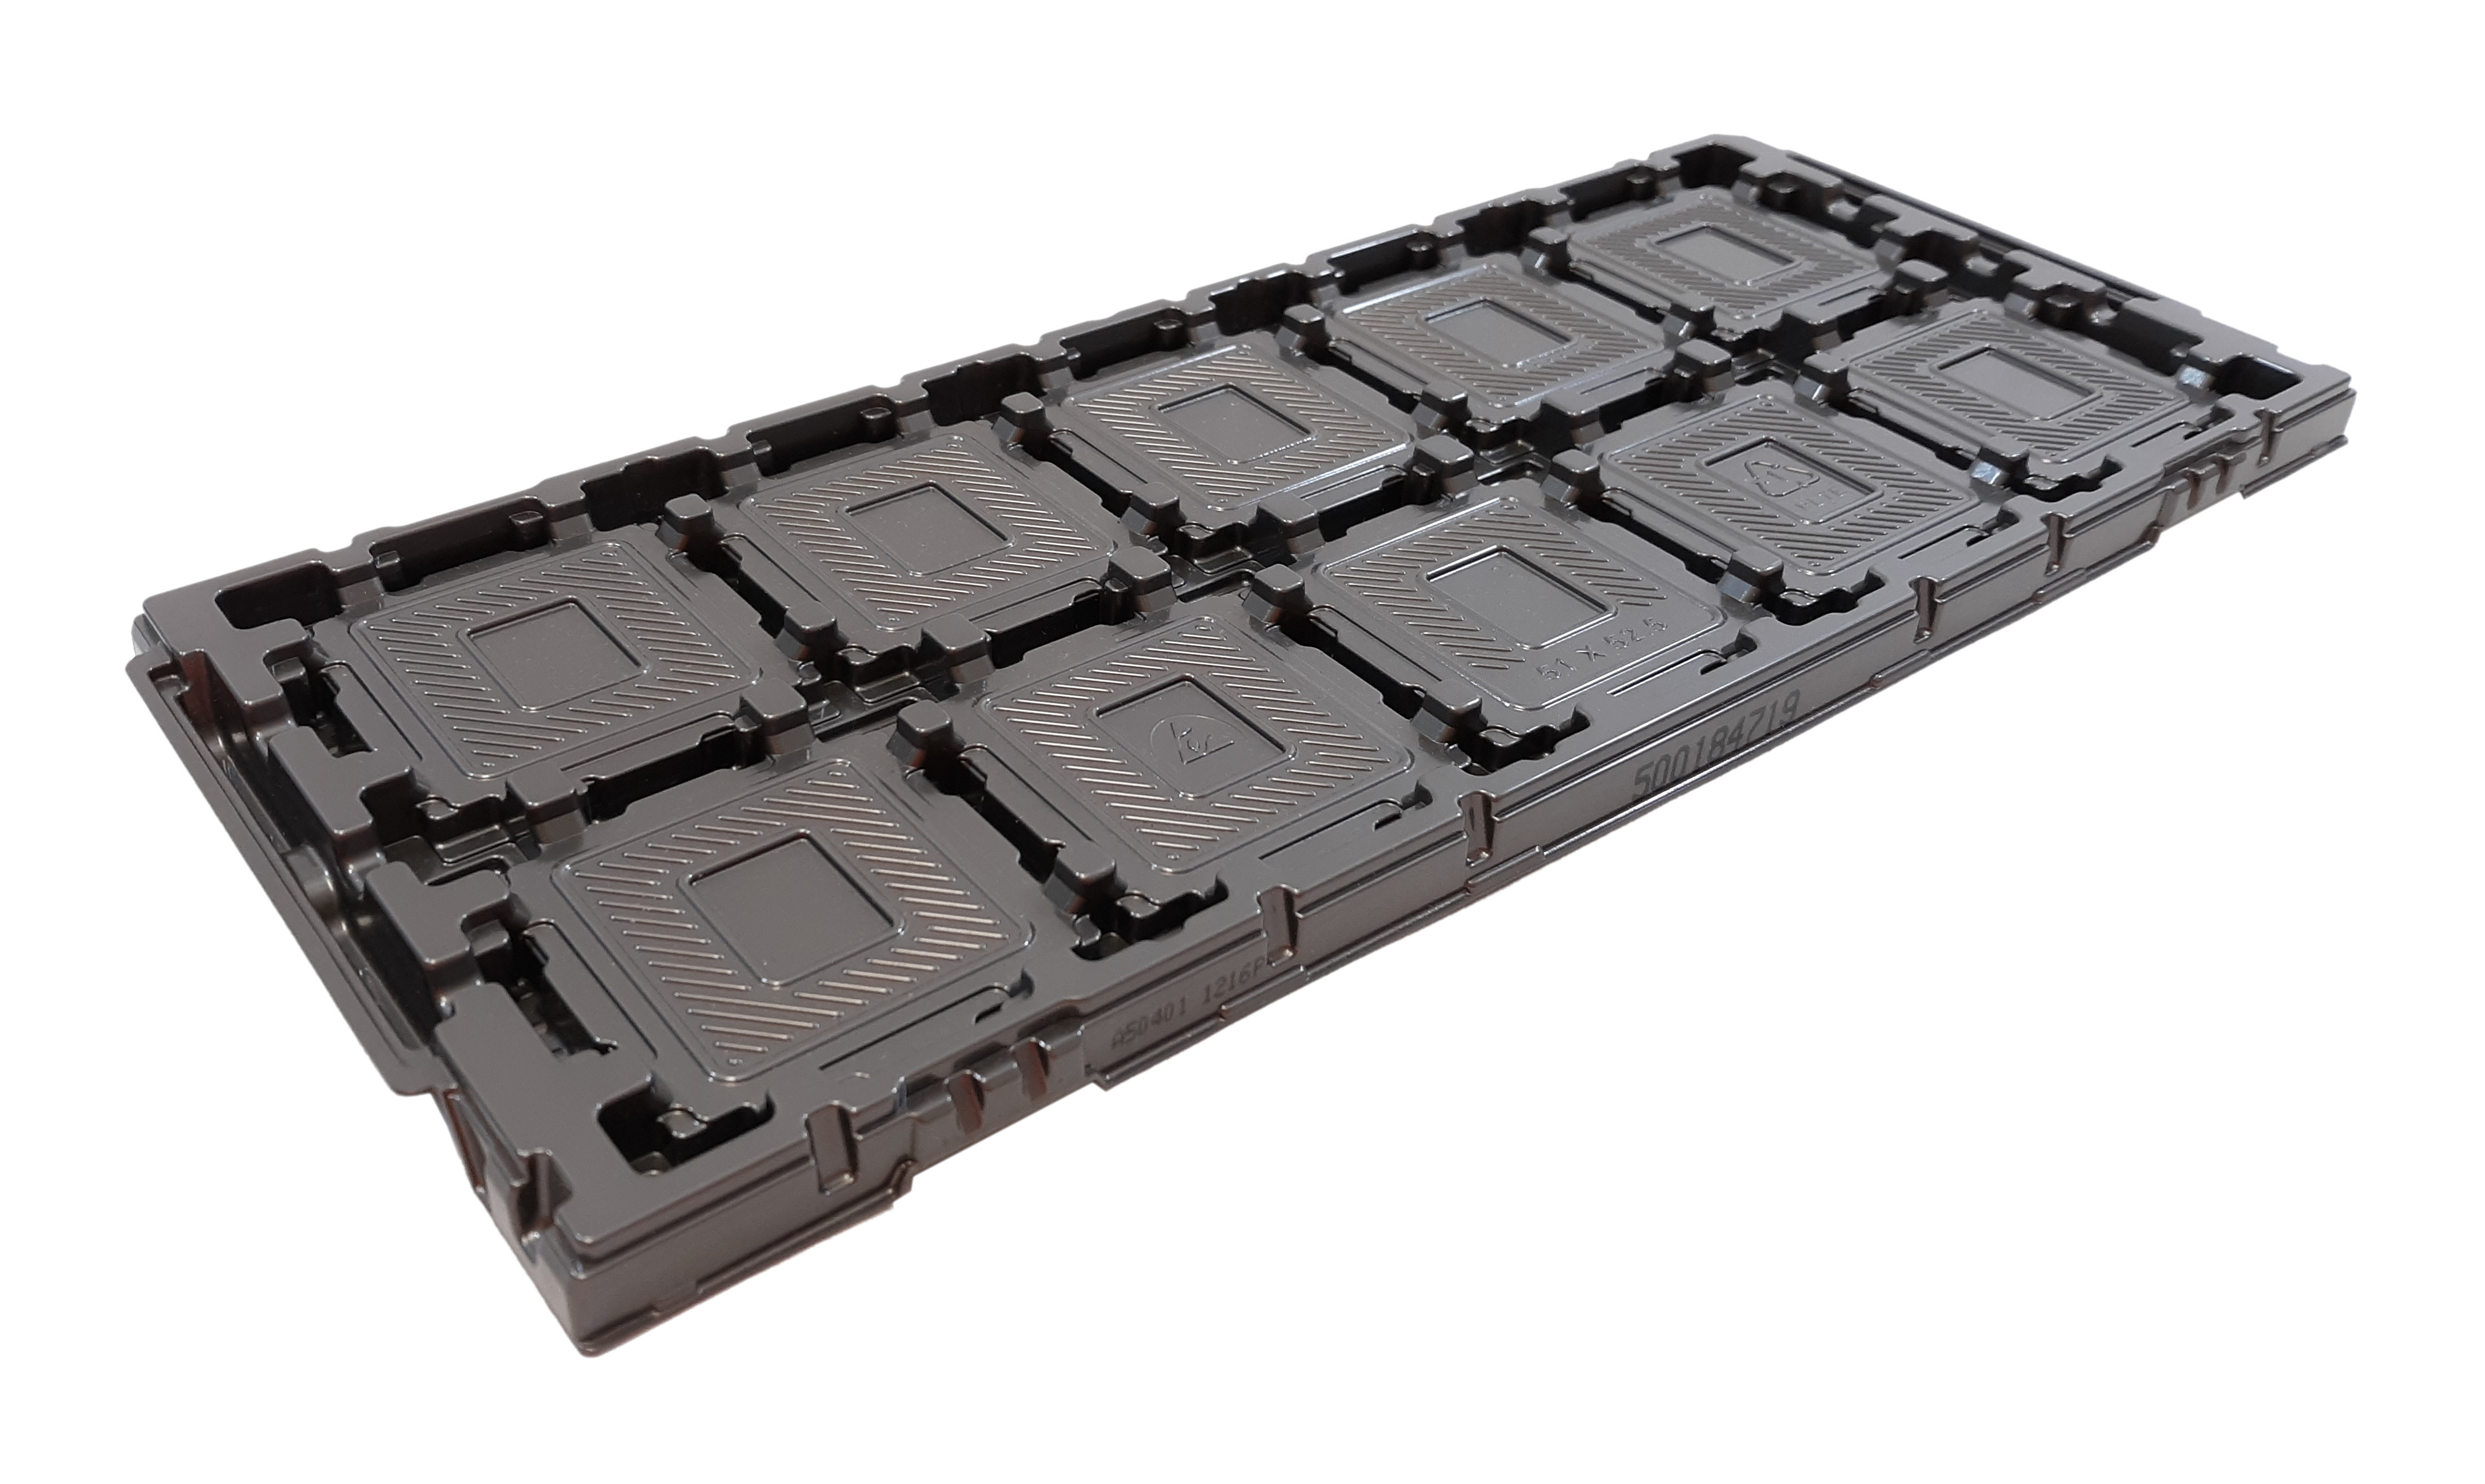 Intel ESD Trays For Xeon LGA2011 (51mm x 52.5mm) CPU Tray Holder 500184719